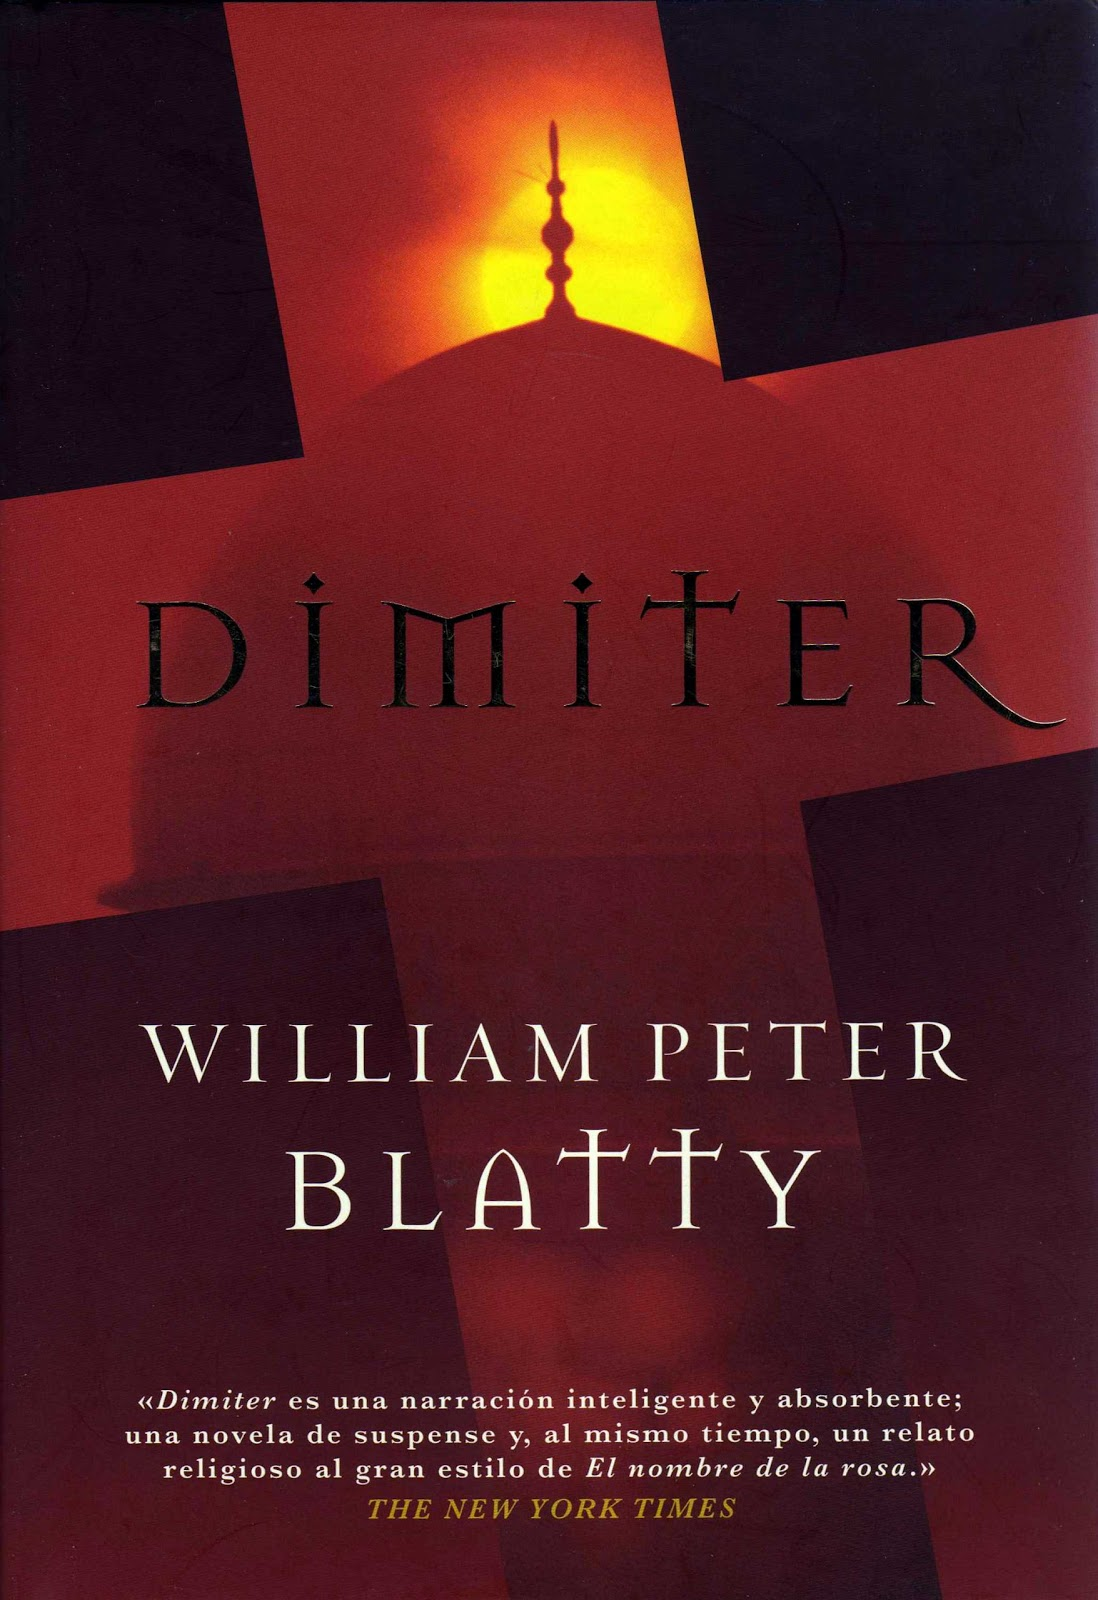 El Exorcista Libro La Cueva De Los Libros Dimiter De William Peter Blatty